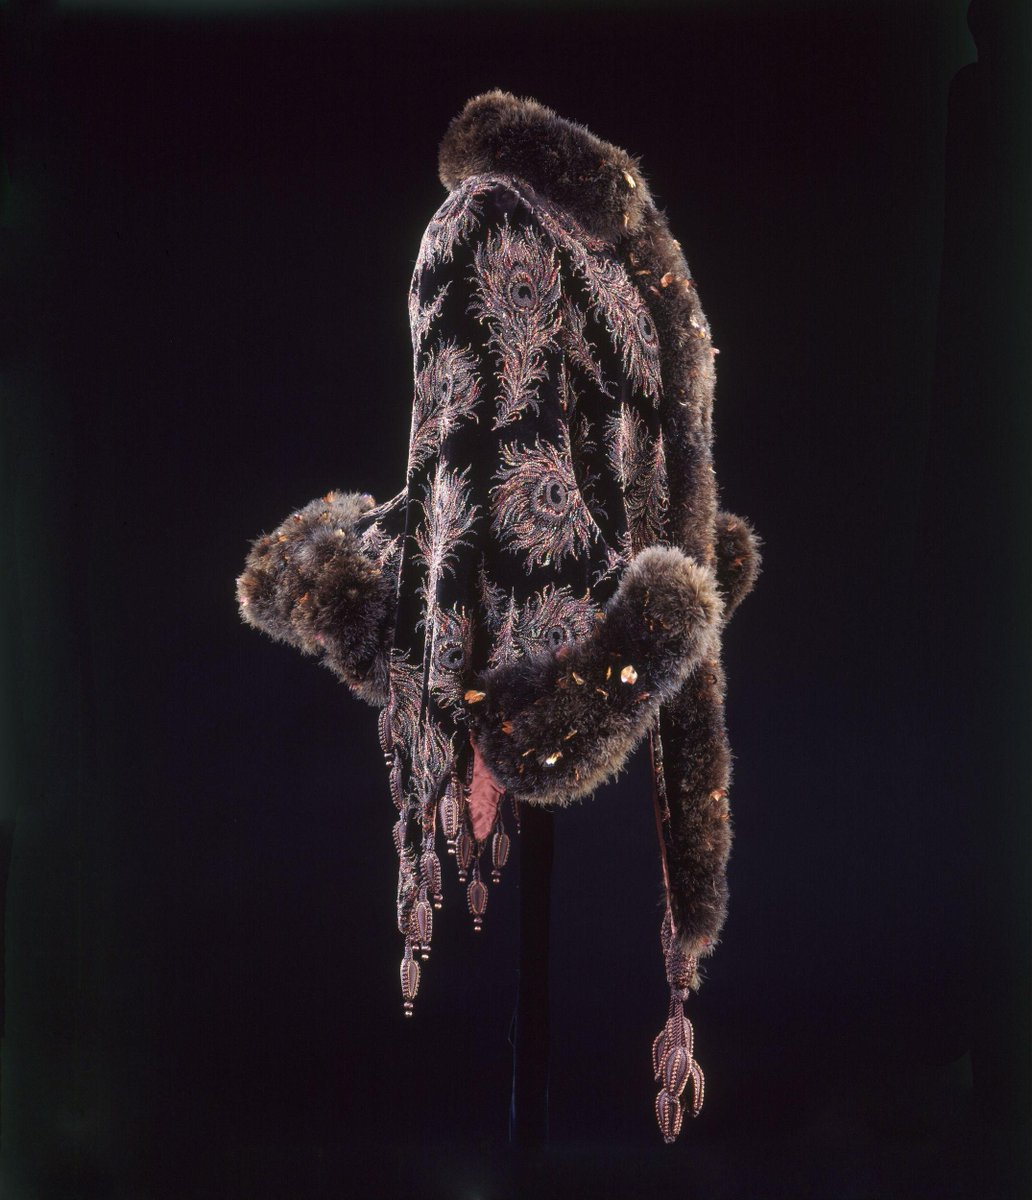 ©Victoria and Albert Museum, London - Dolman mantle of cut and uncut velvet with a feather trim and braided pendants tassels for decoration. Peacock feathers were a popular design motif in the 1860s to 1880s. Marabou trimming, obtained from the downy underwing feathers of the marabou stork became particularly fashionable in the second half of the 19th century. These birds were native to most part of the southern two thirds of Africa. Their downy feathers could be dyed any colour required and fashioned into long ropes of luxurious trimming, almost fur-like in appearance, as illustrated on this garment.